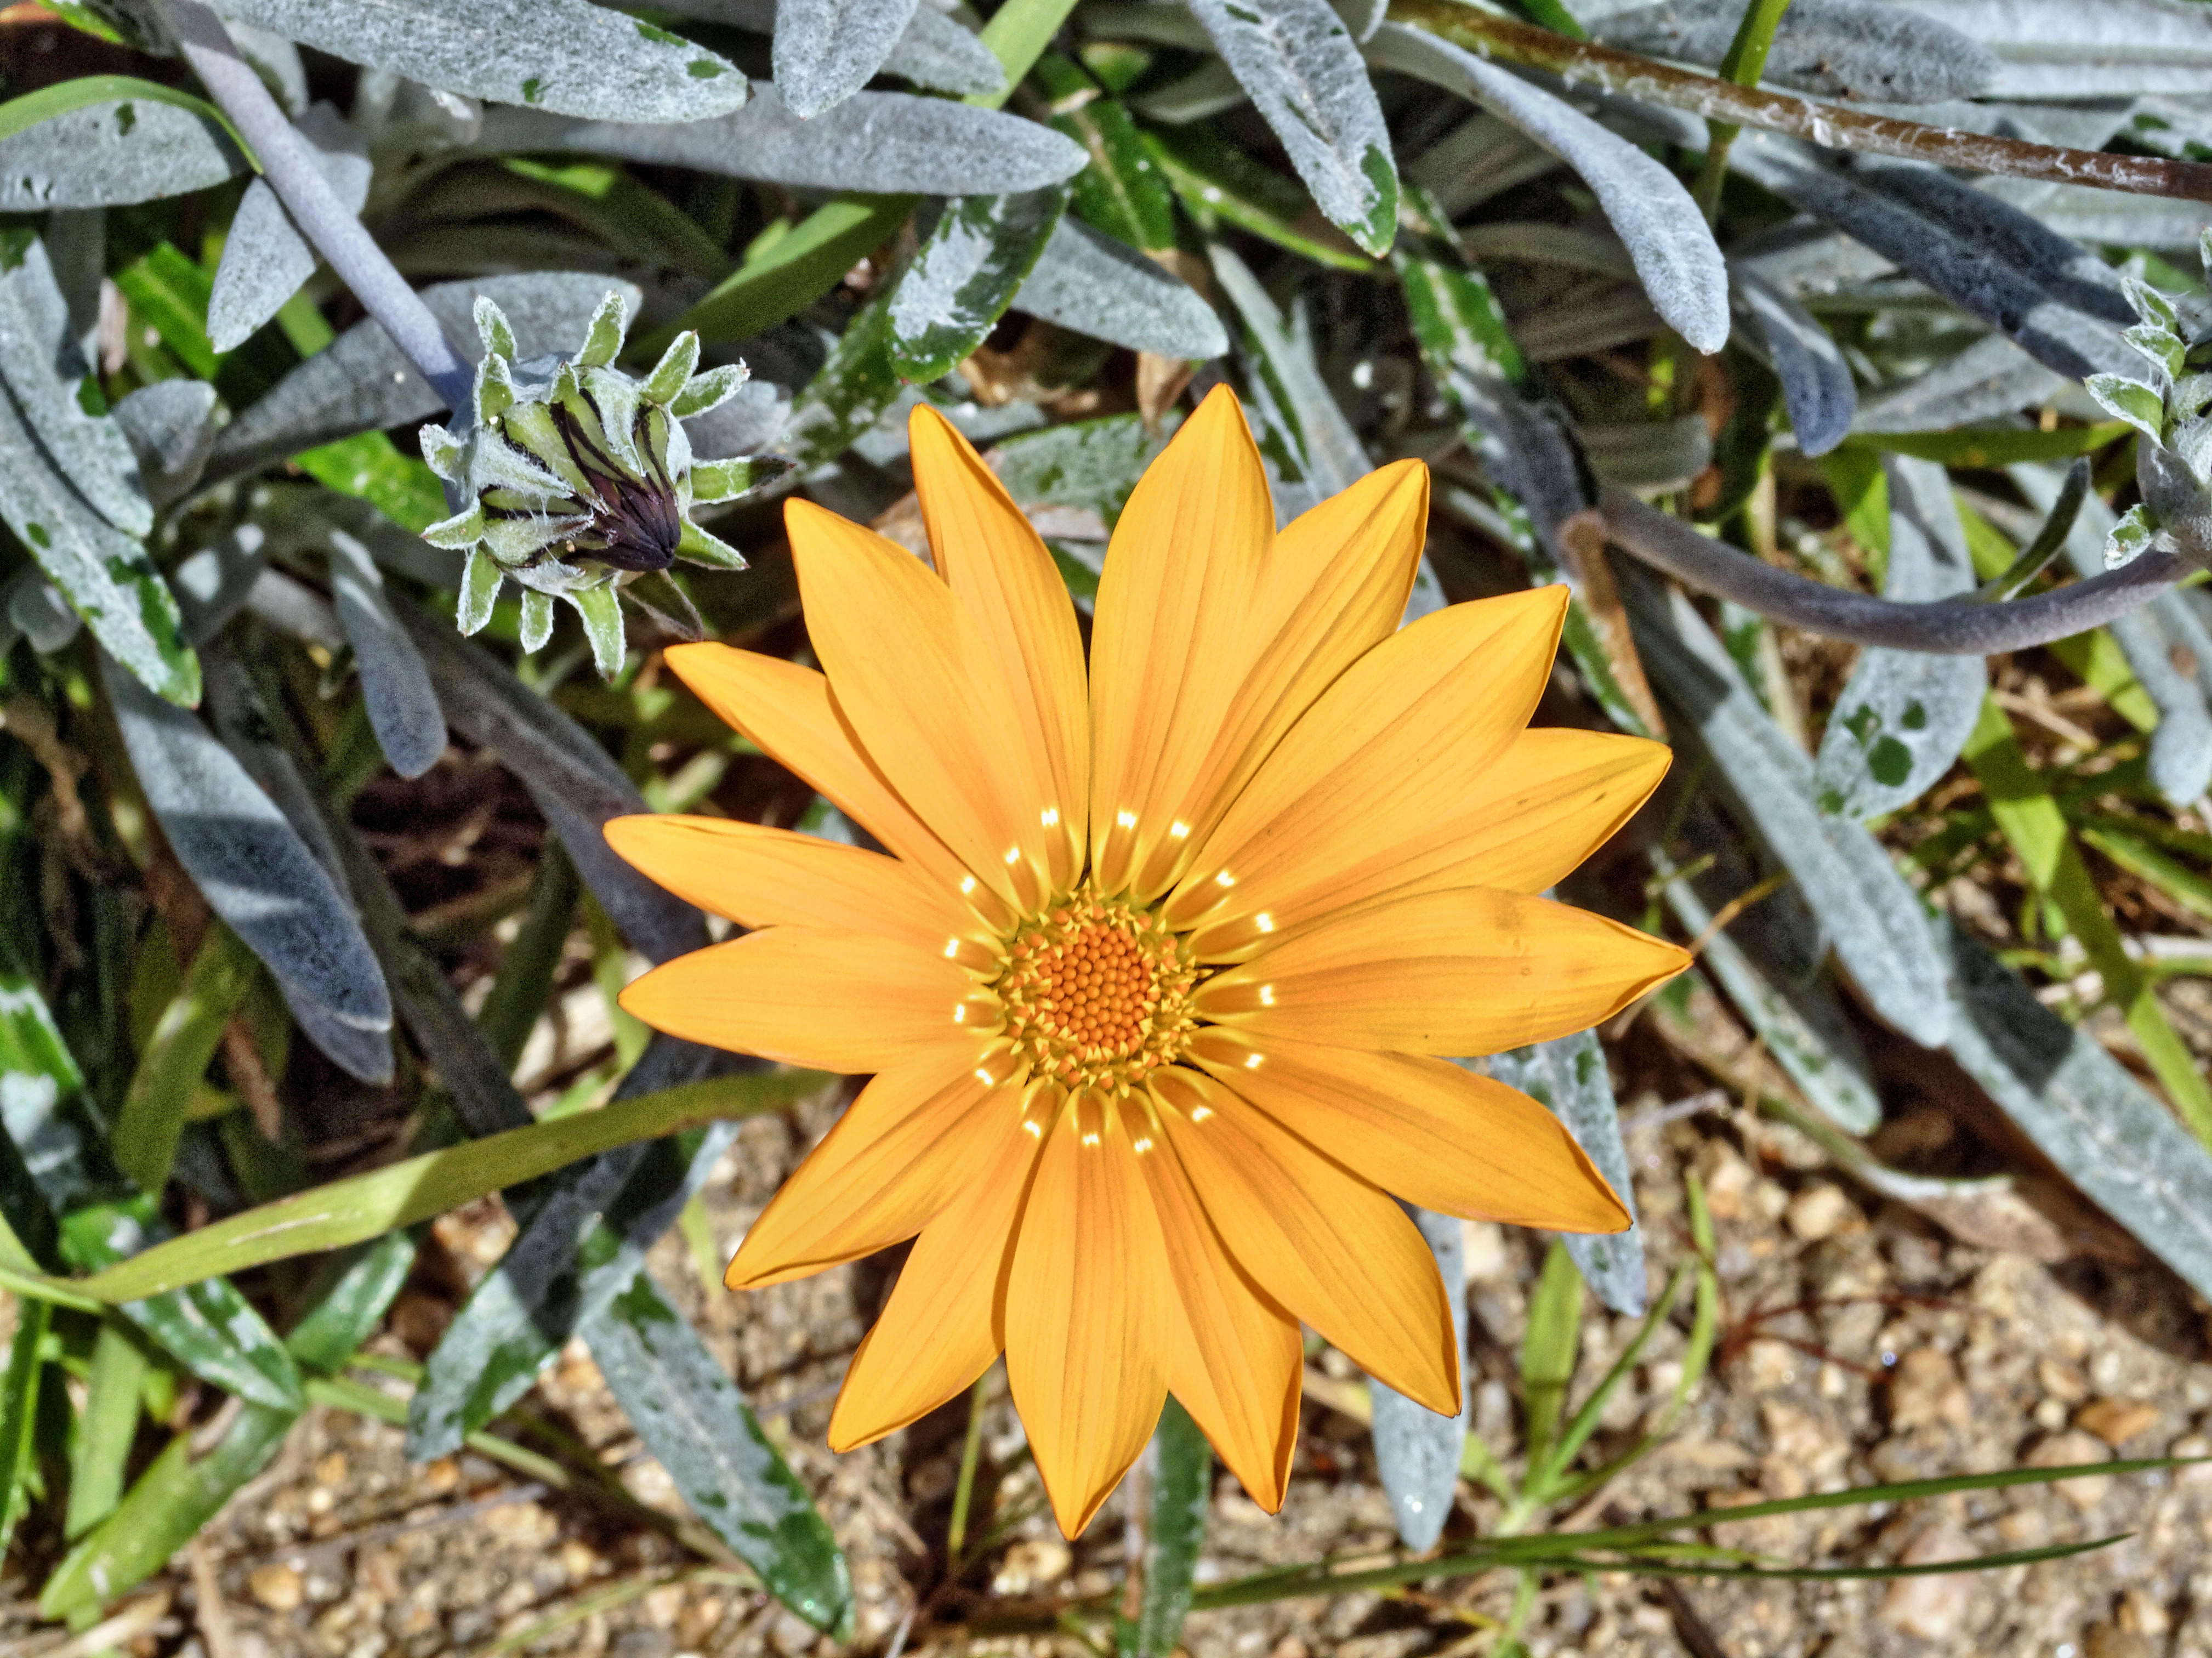 This should be Gazania-2.jpeg.  Is it missing?